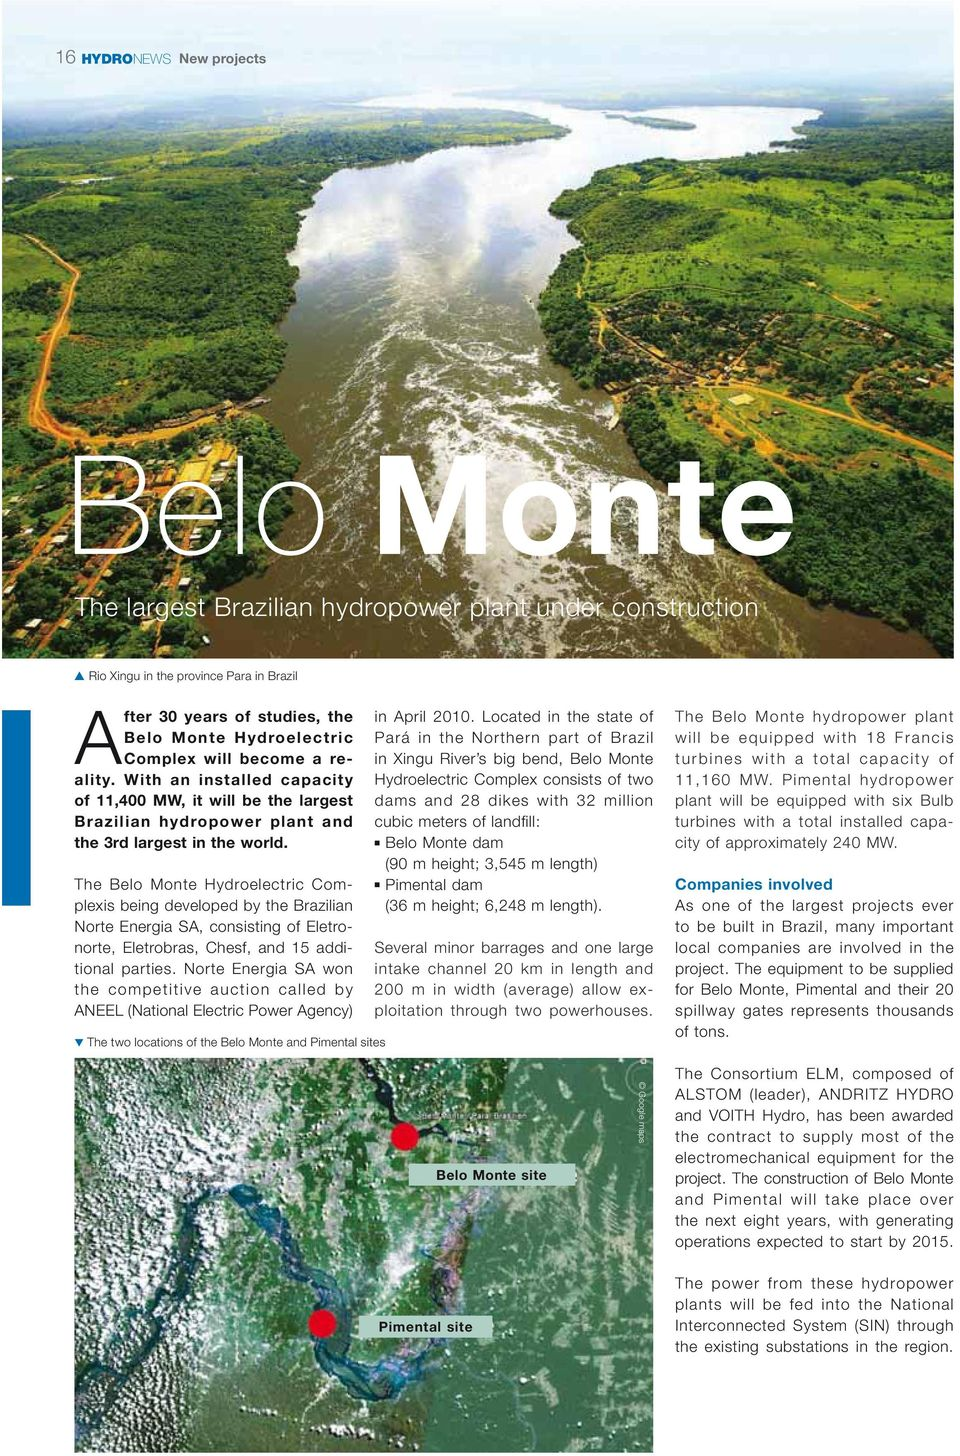 The Belo Monte Hydroelectric Complexis being developed by the Brazilian Norte Energia SA, consisting of Eletronorte, Eletrobras, Chesf, and 15 additional parties.